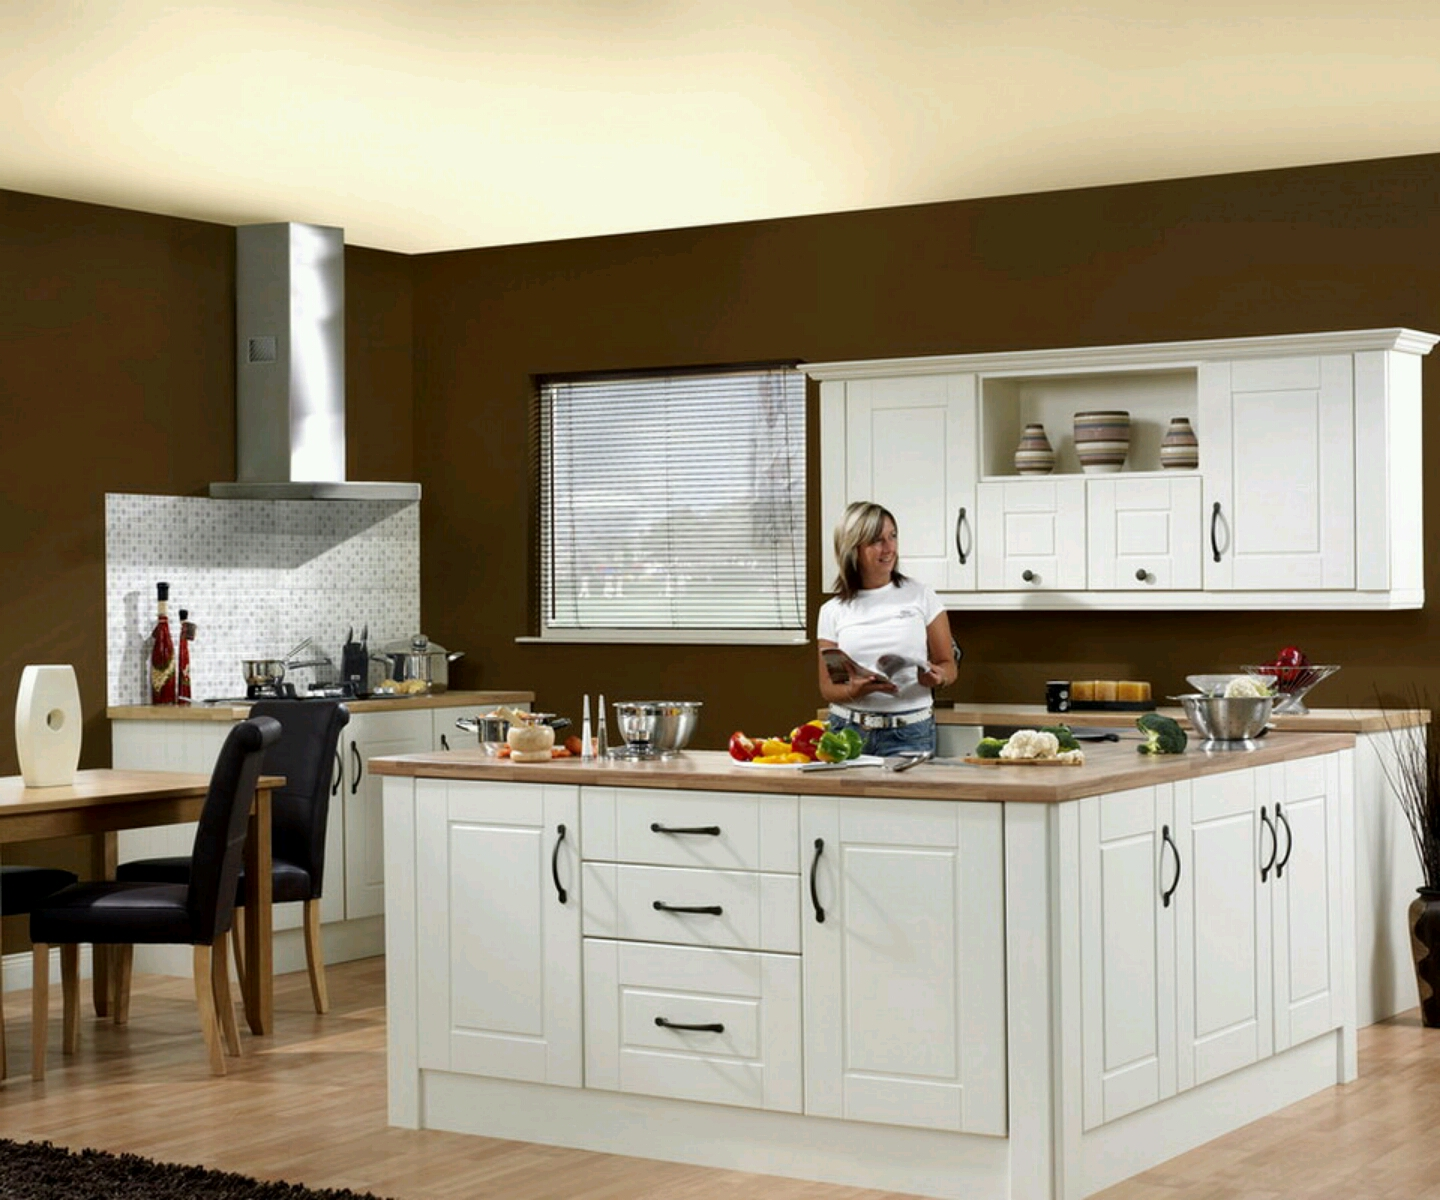 home designs latest modern homes ultra modern kitchen designs views comments home kitchen design display